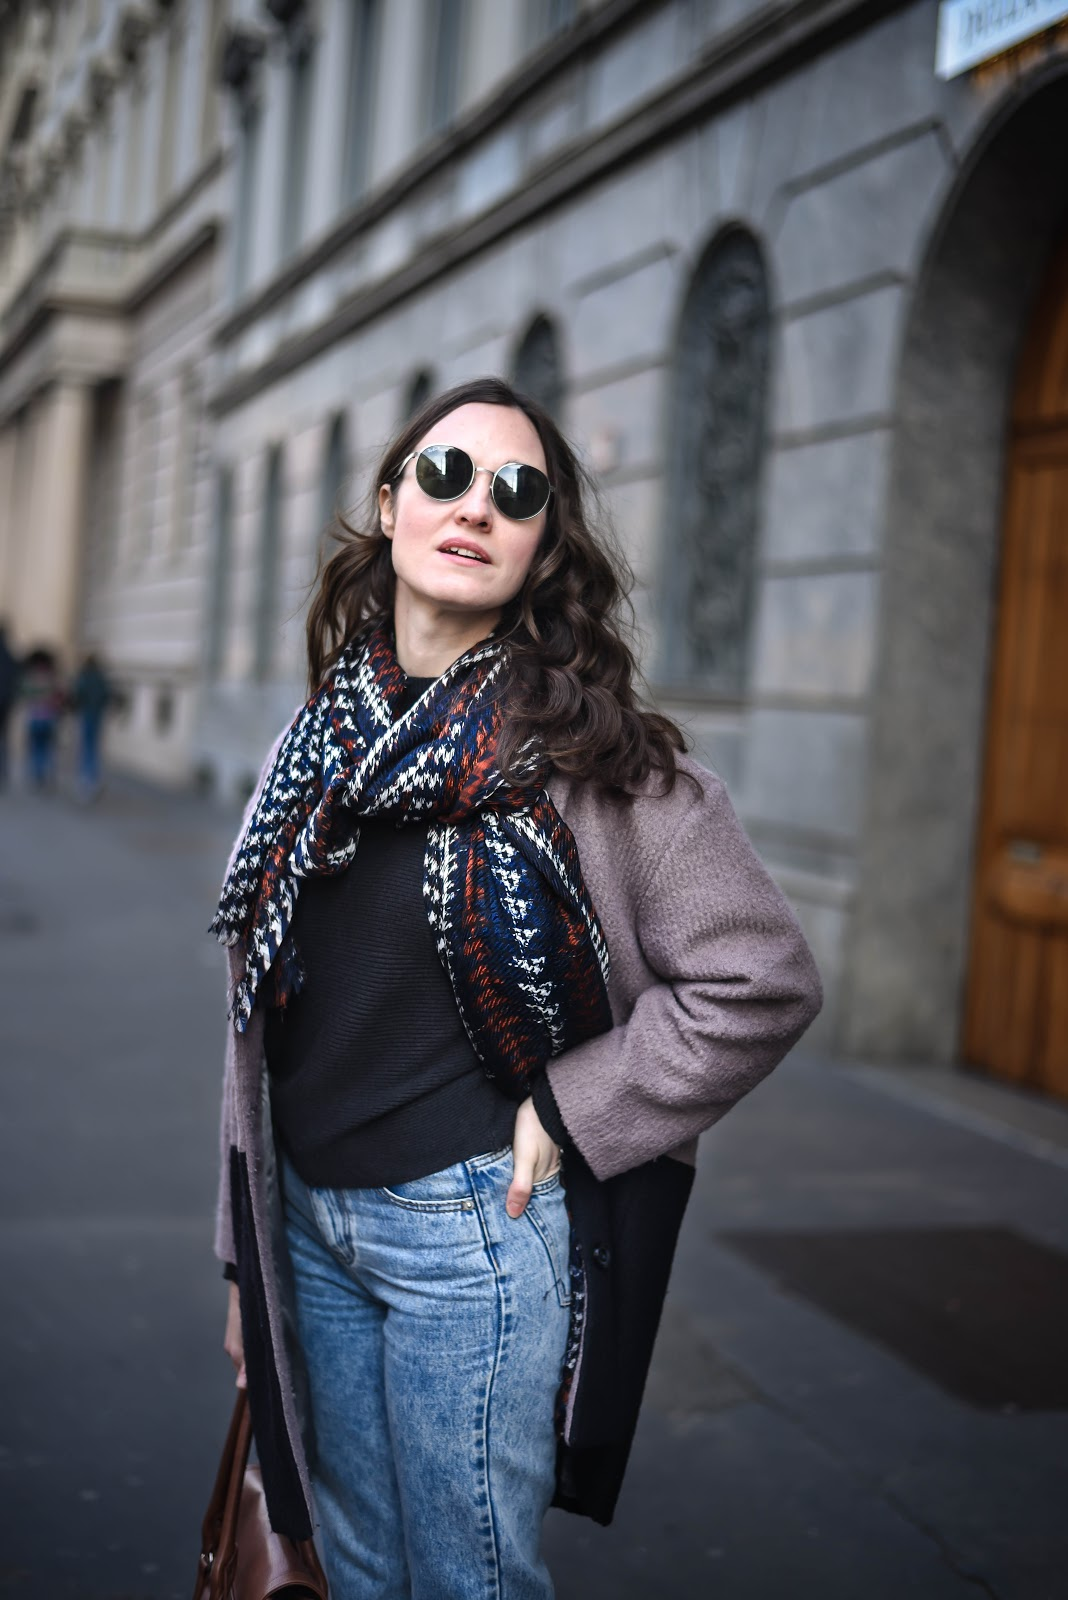 mom_jeans_scarf_street_style_milano_fashion_look